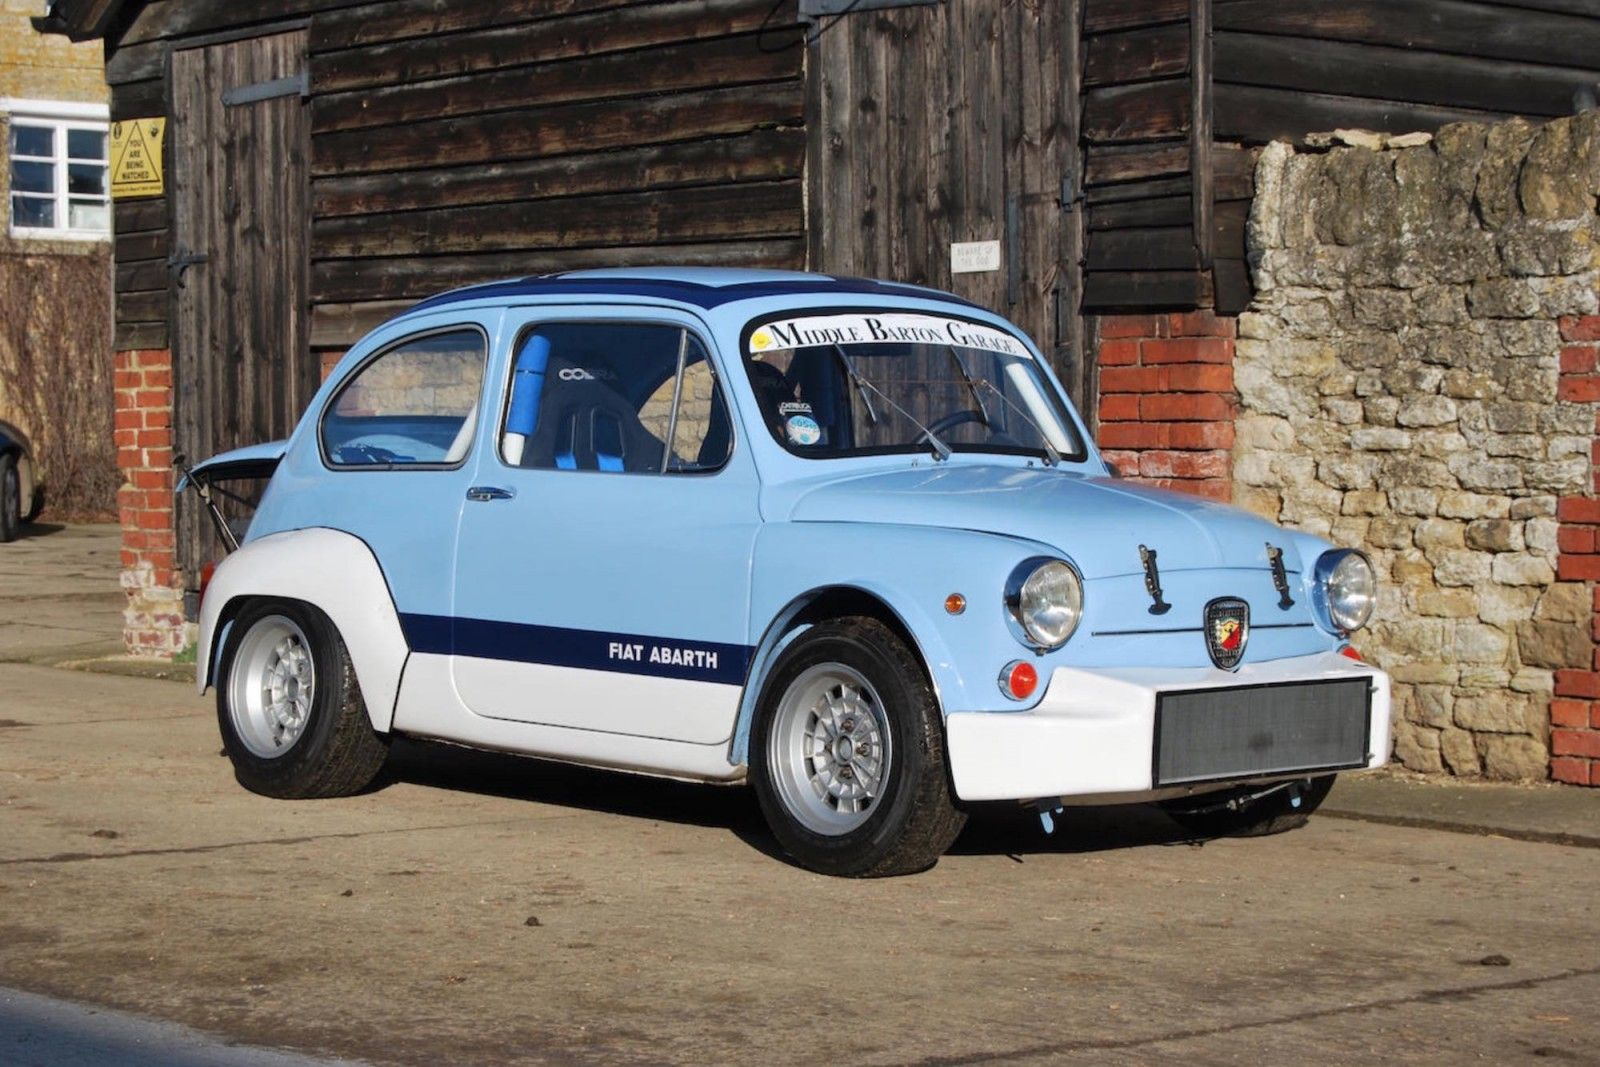 1966 Fiat Abarth 1000 Tc Corsa With Images Fiat Abarth Fiat